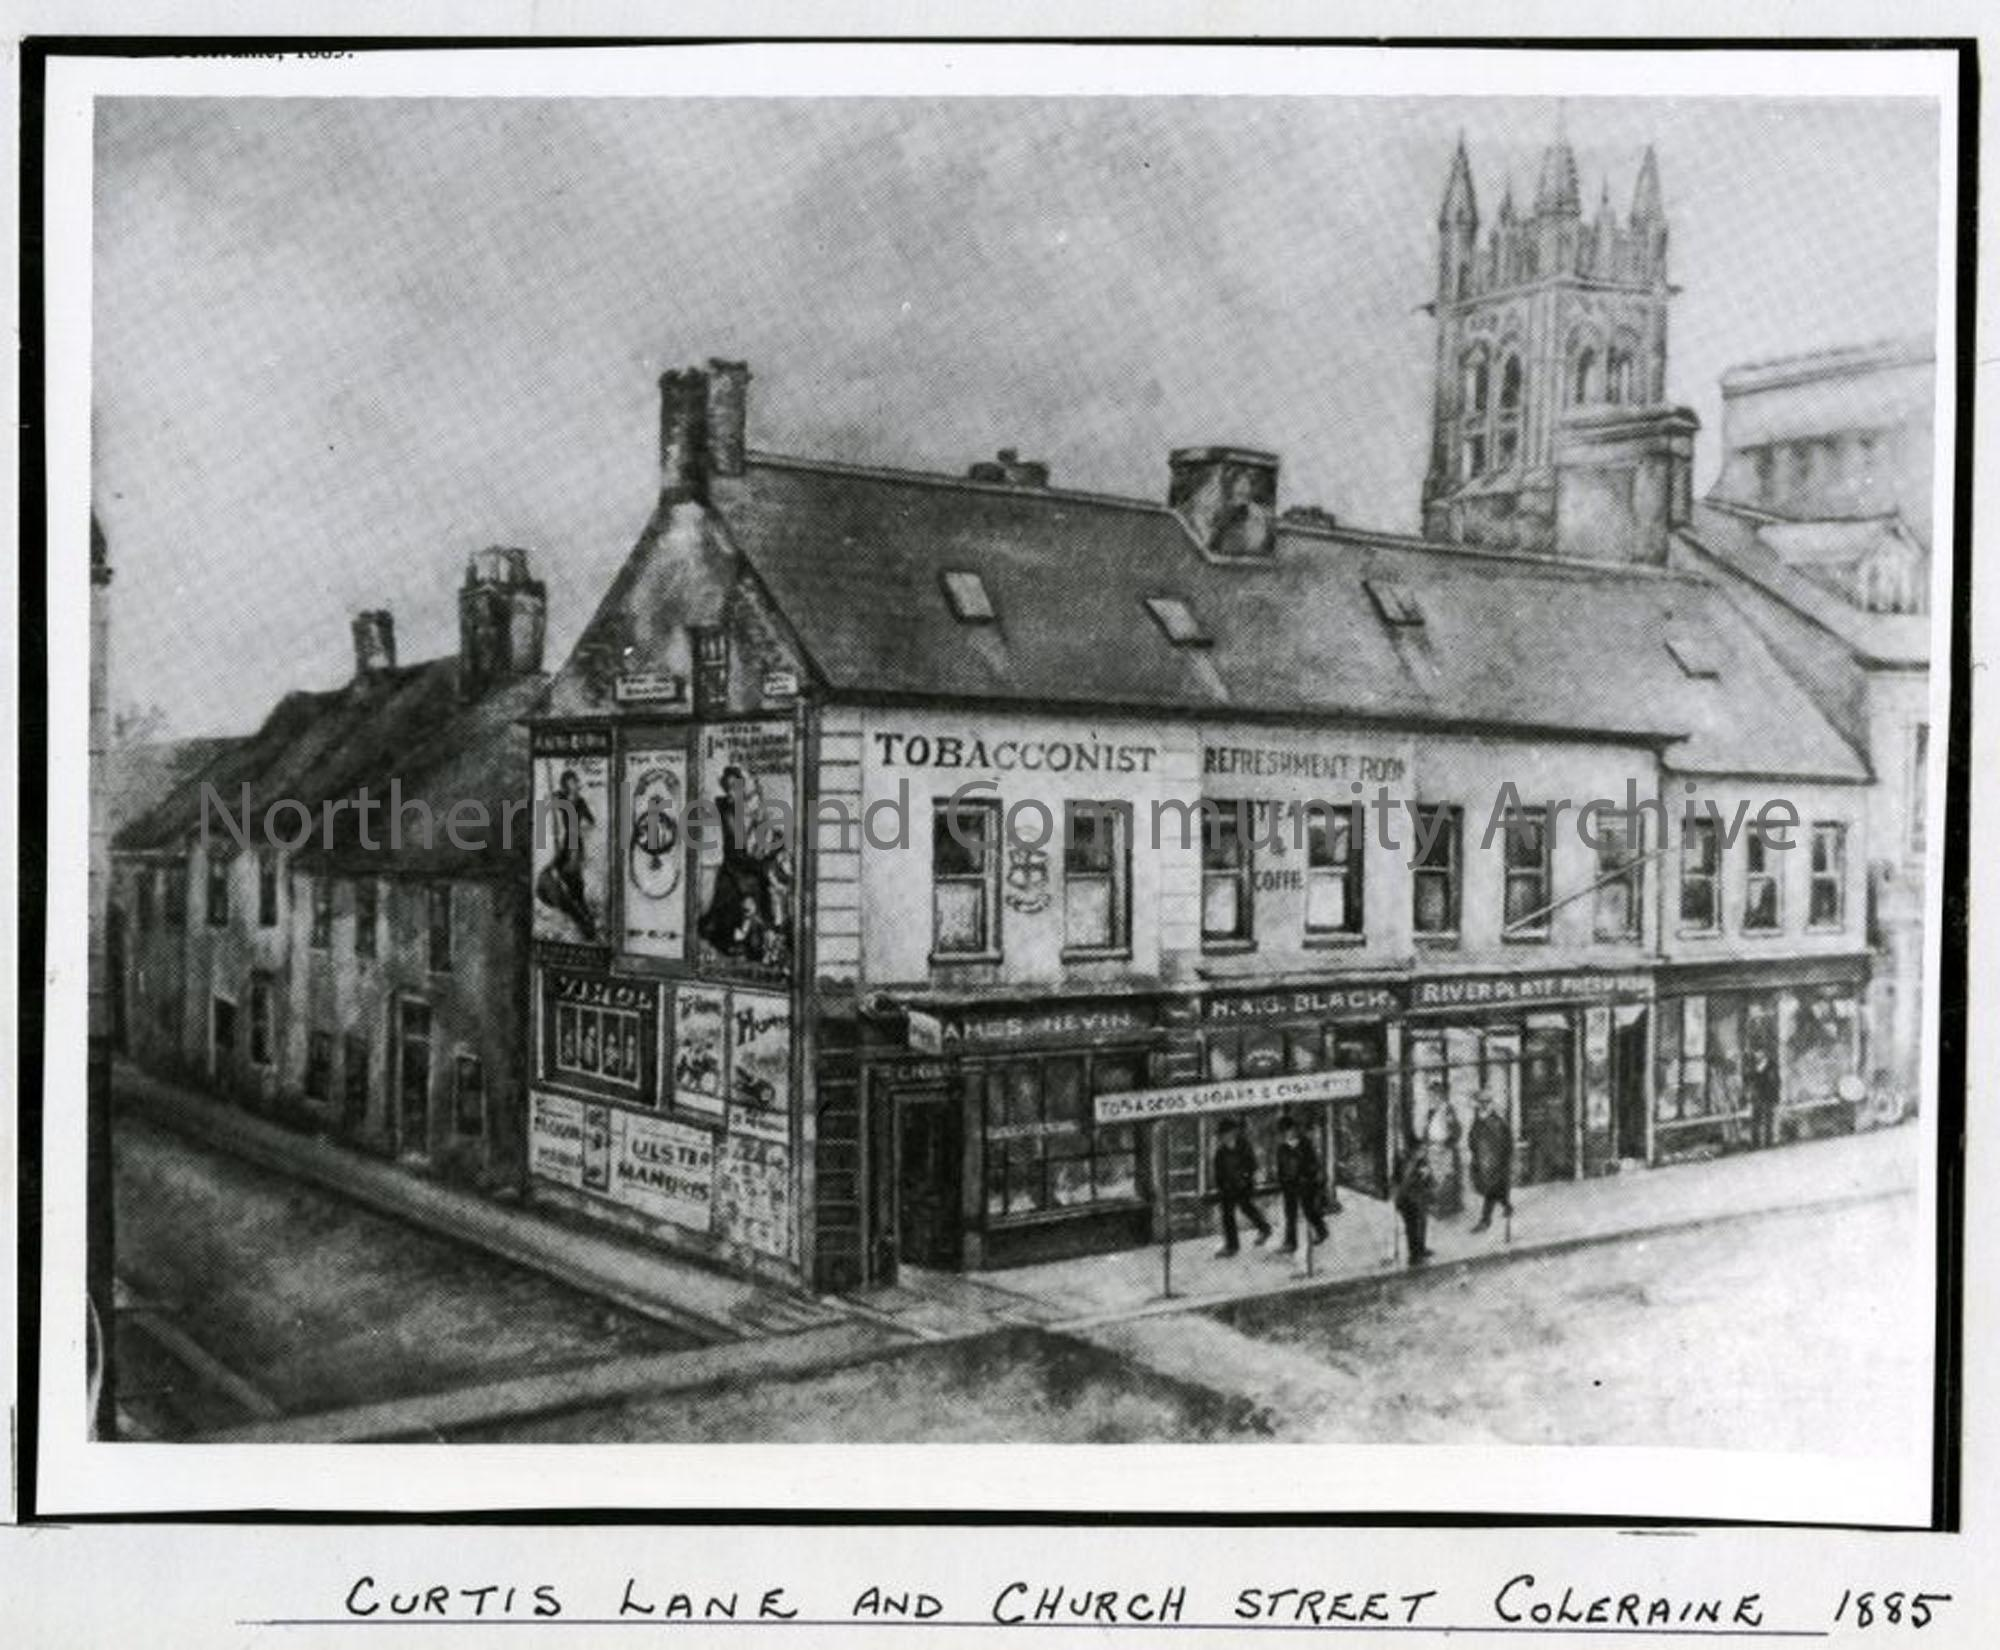 Curtis Lane and Church Street Coleraine, 1885